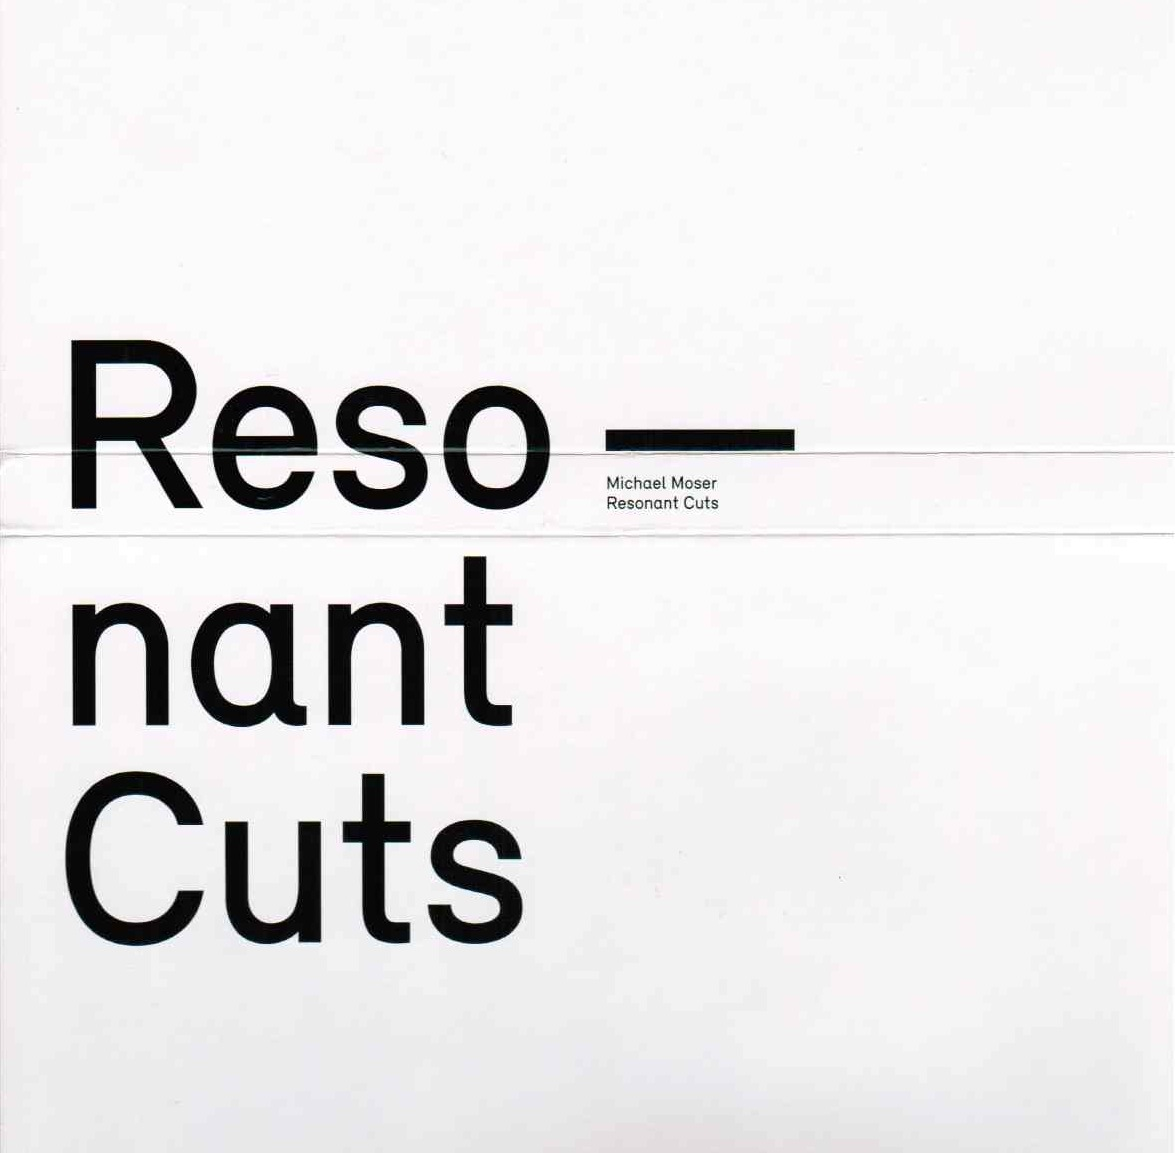 MICHAEL MOSER - Resonant Cuts